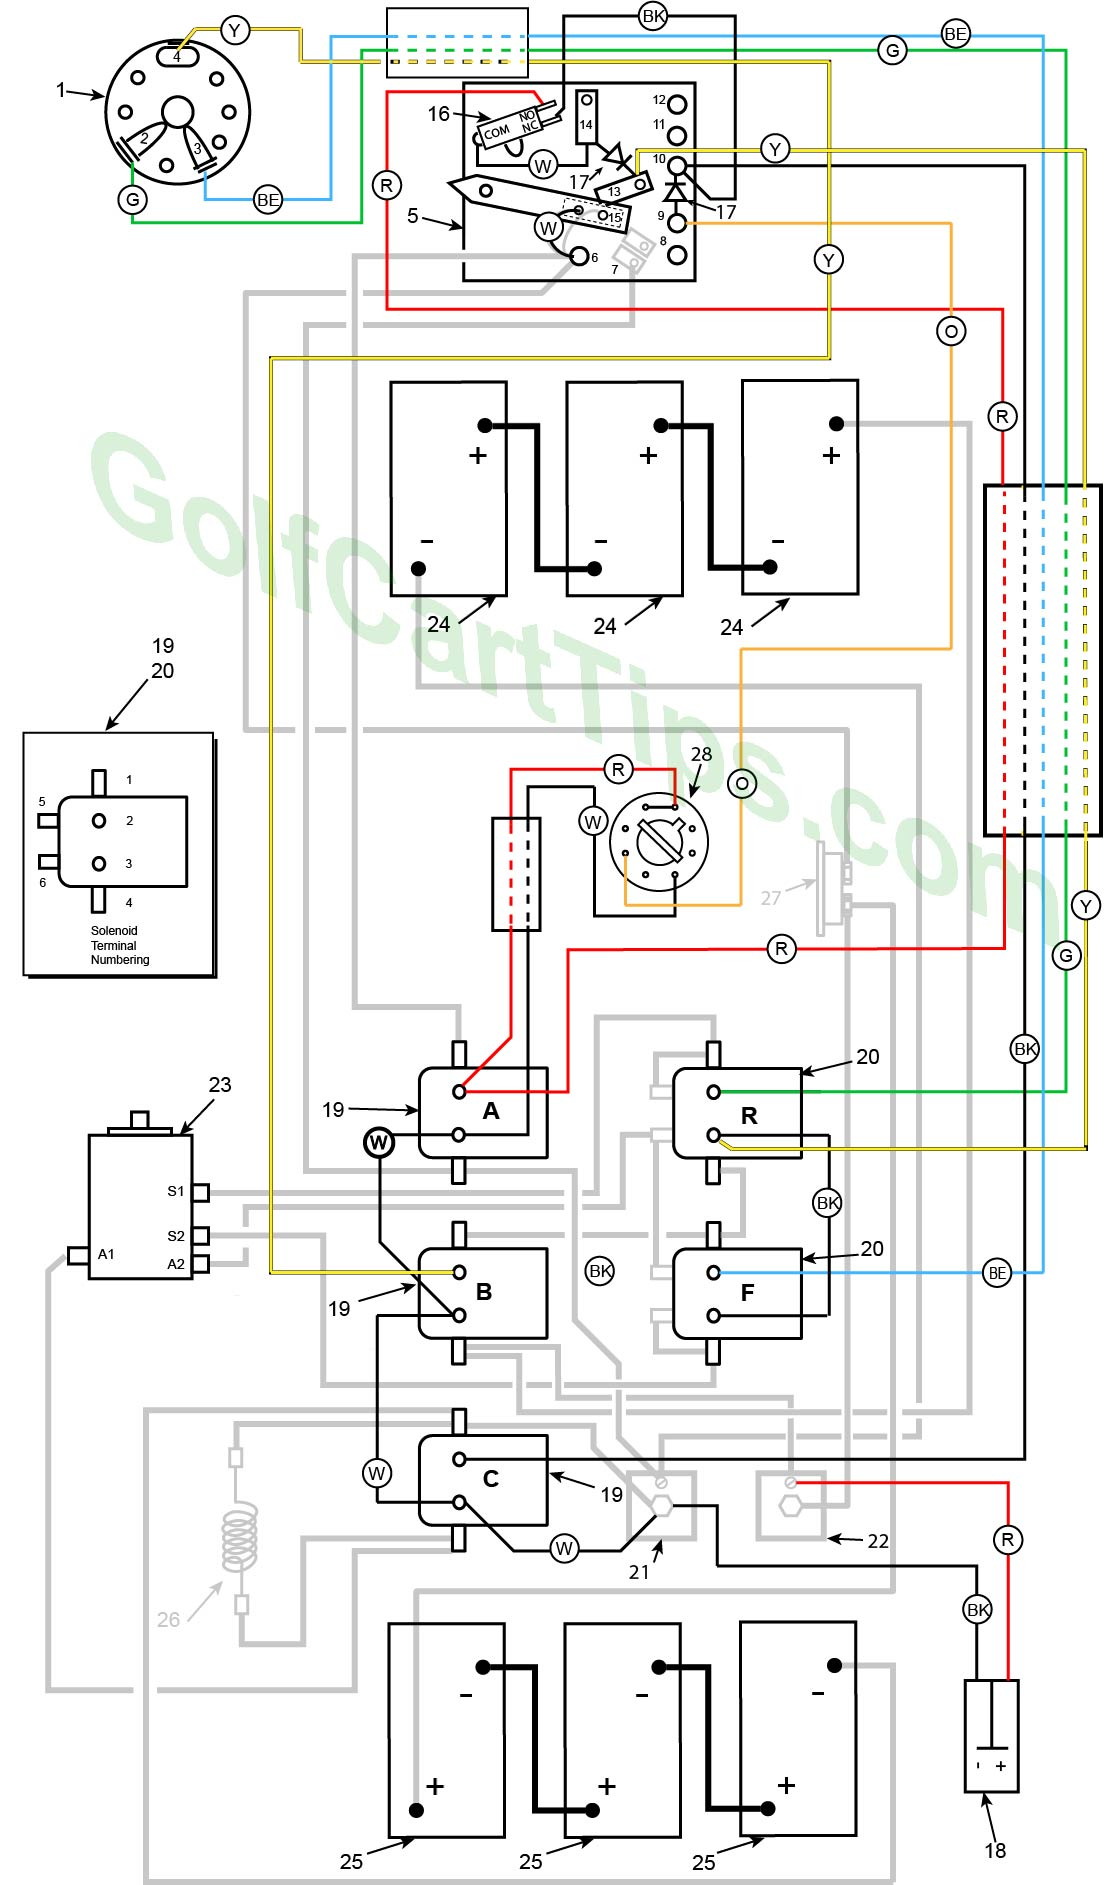 hight resolution of 1971 model de control circuit wiring diagram for 16 gauge wire